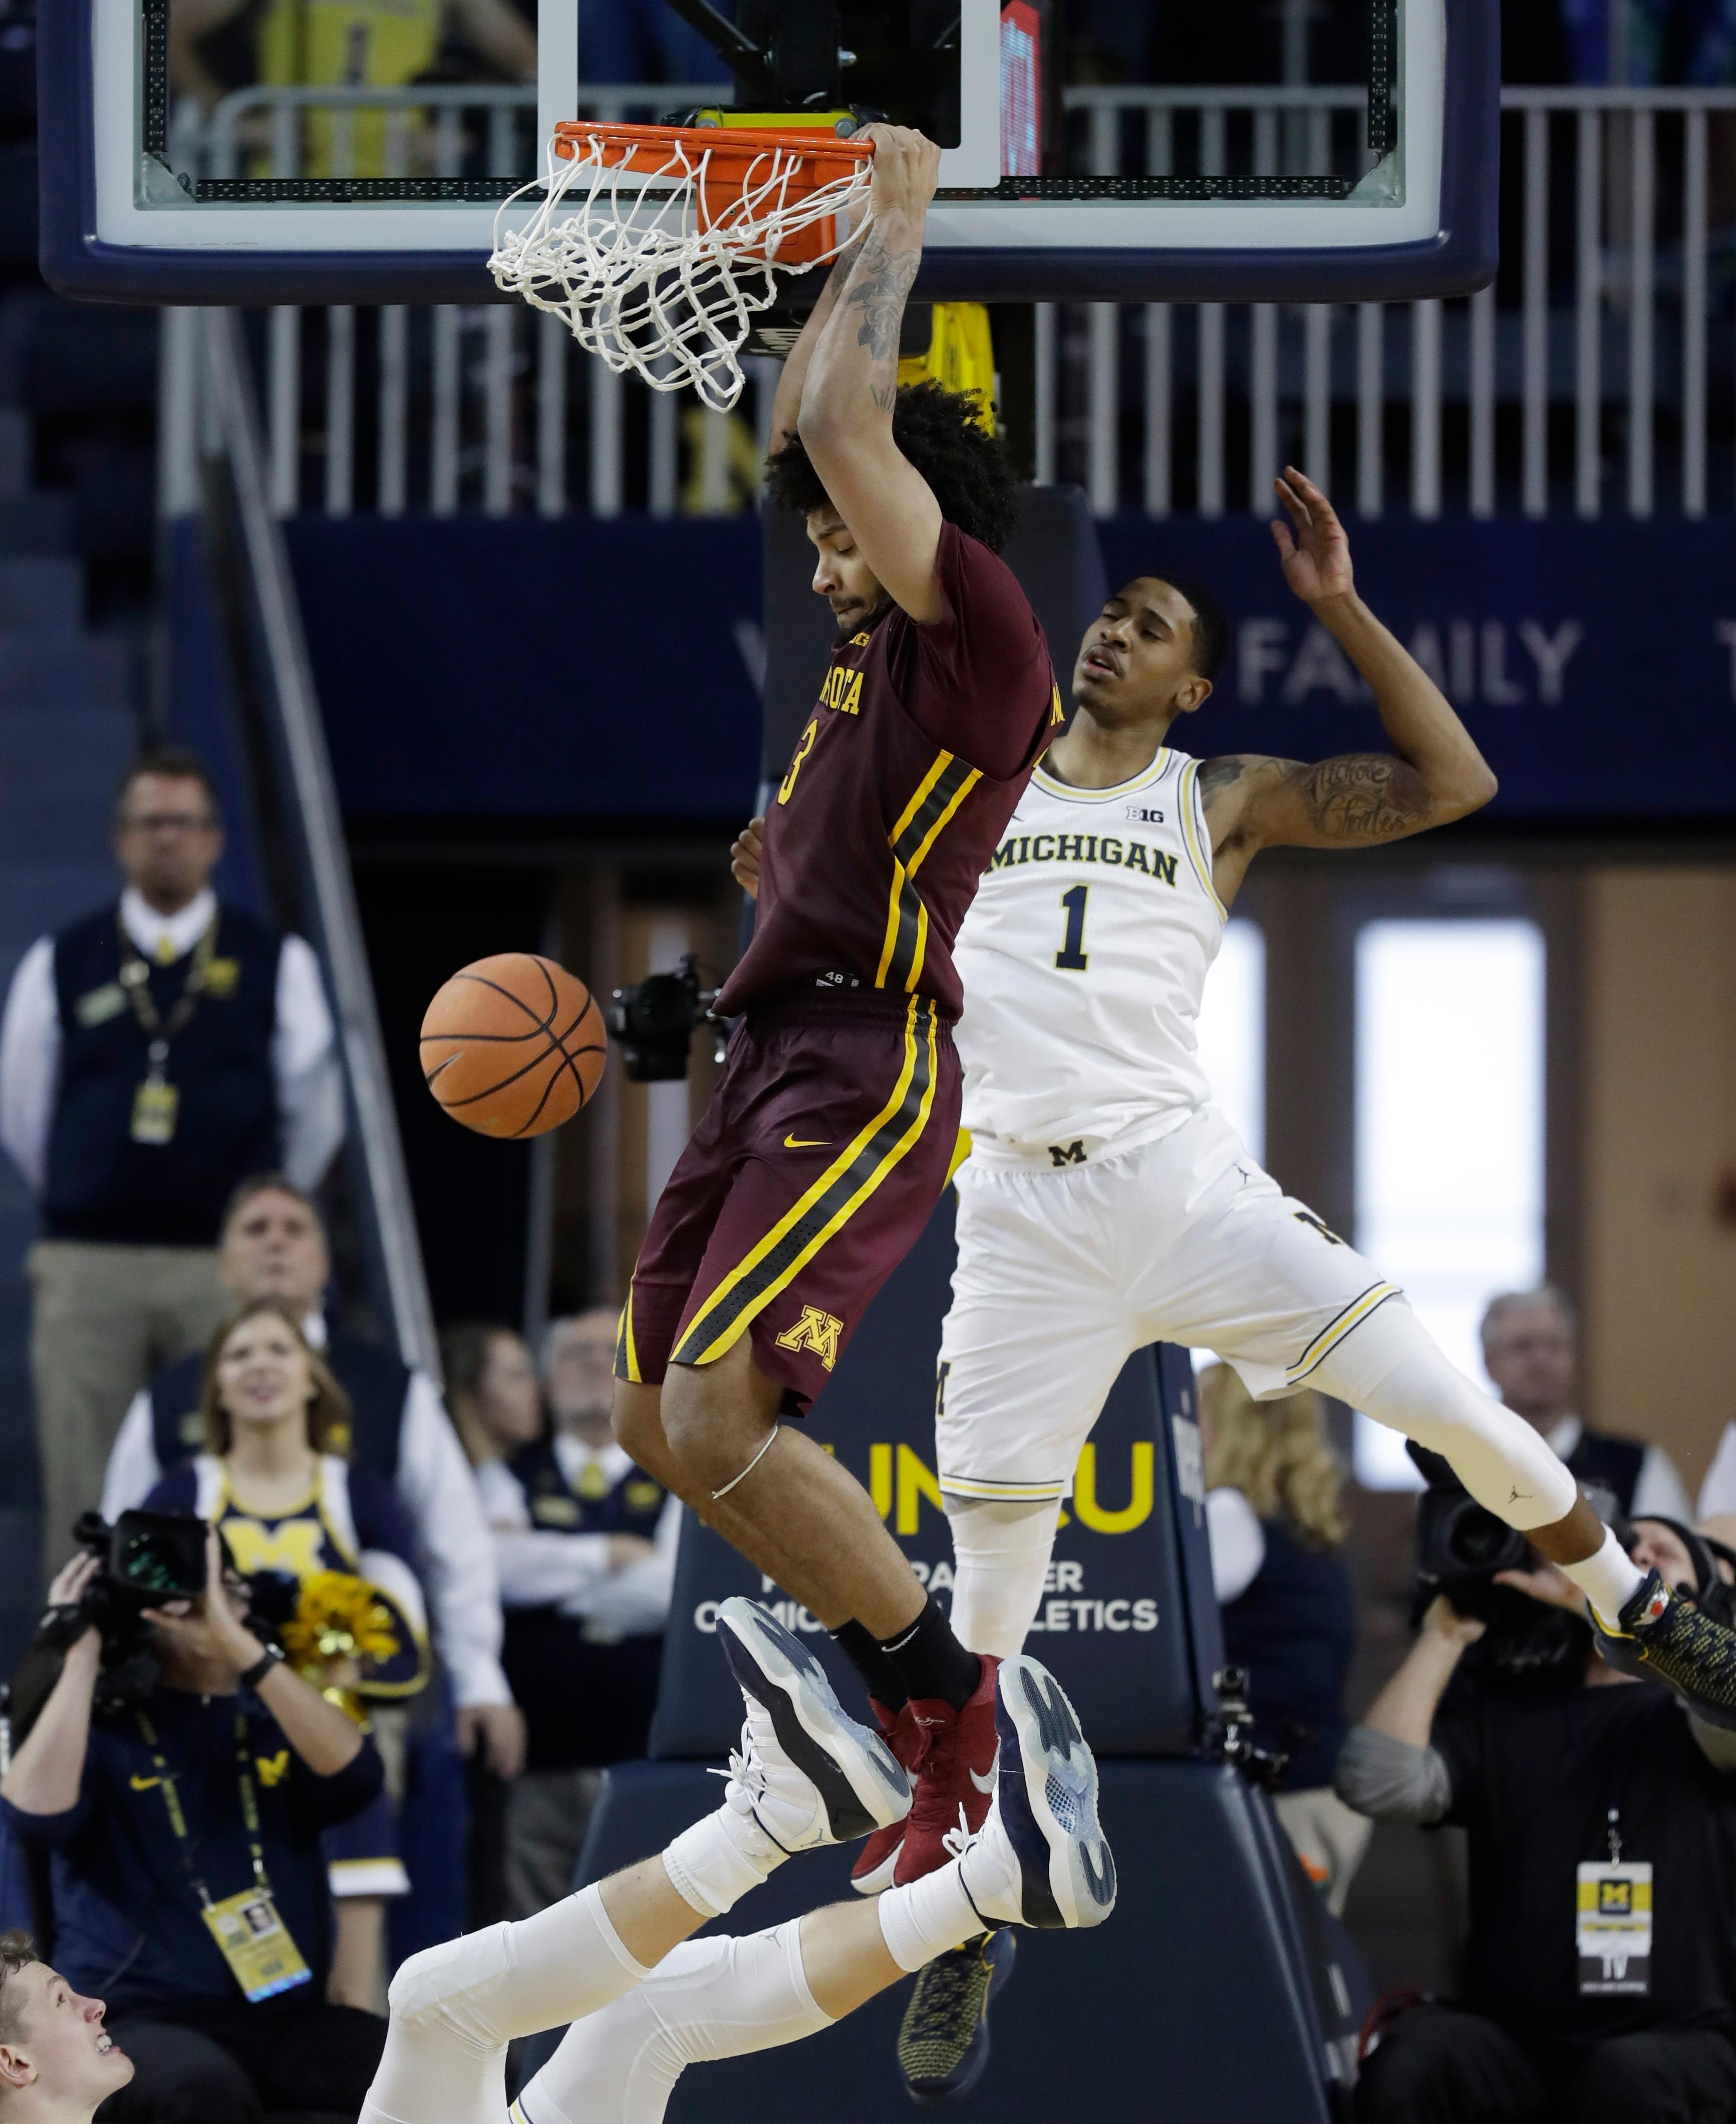 Minnesota forward Jordan Murphy (3) dunks as Michigan guard Charles Matthews (1) defends during the second half of an NCAA college basketball game, Saturday, Feb. 3,2018, in Ann Arbor, Mich. (AP Photo/Carlos Osorio)